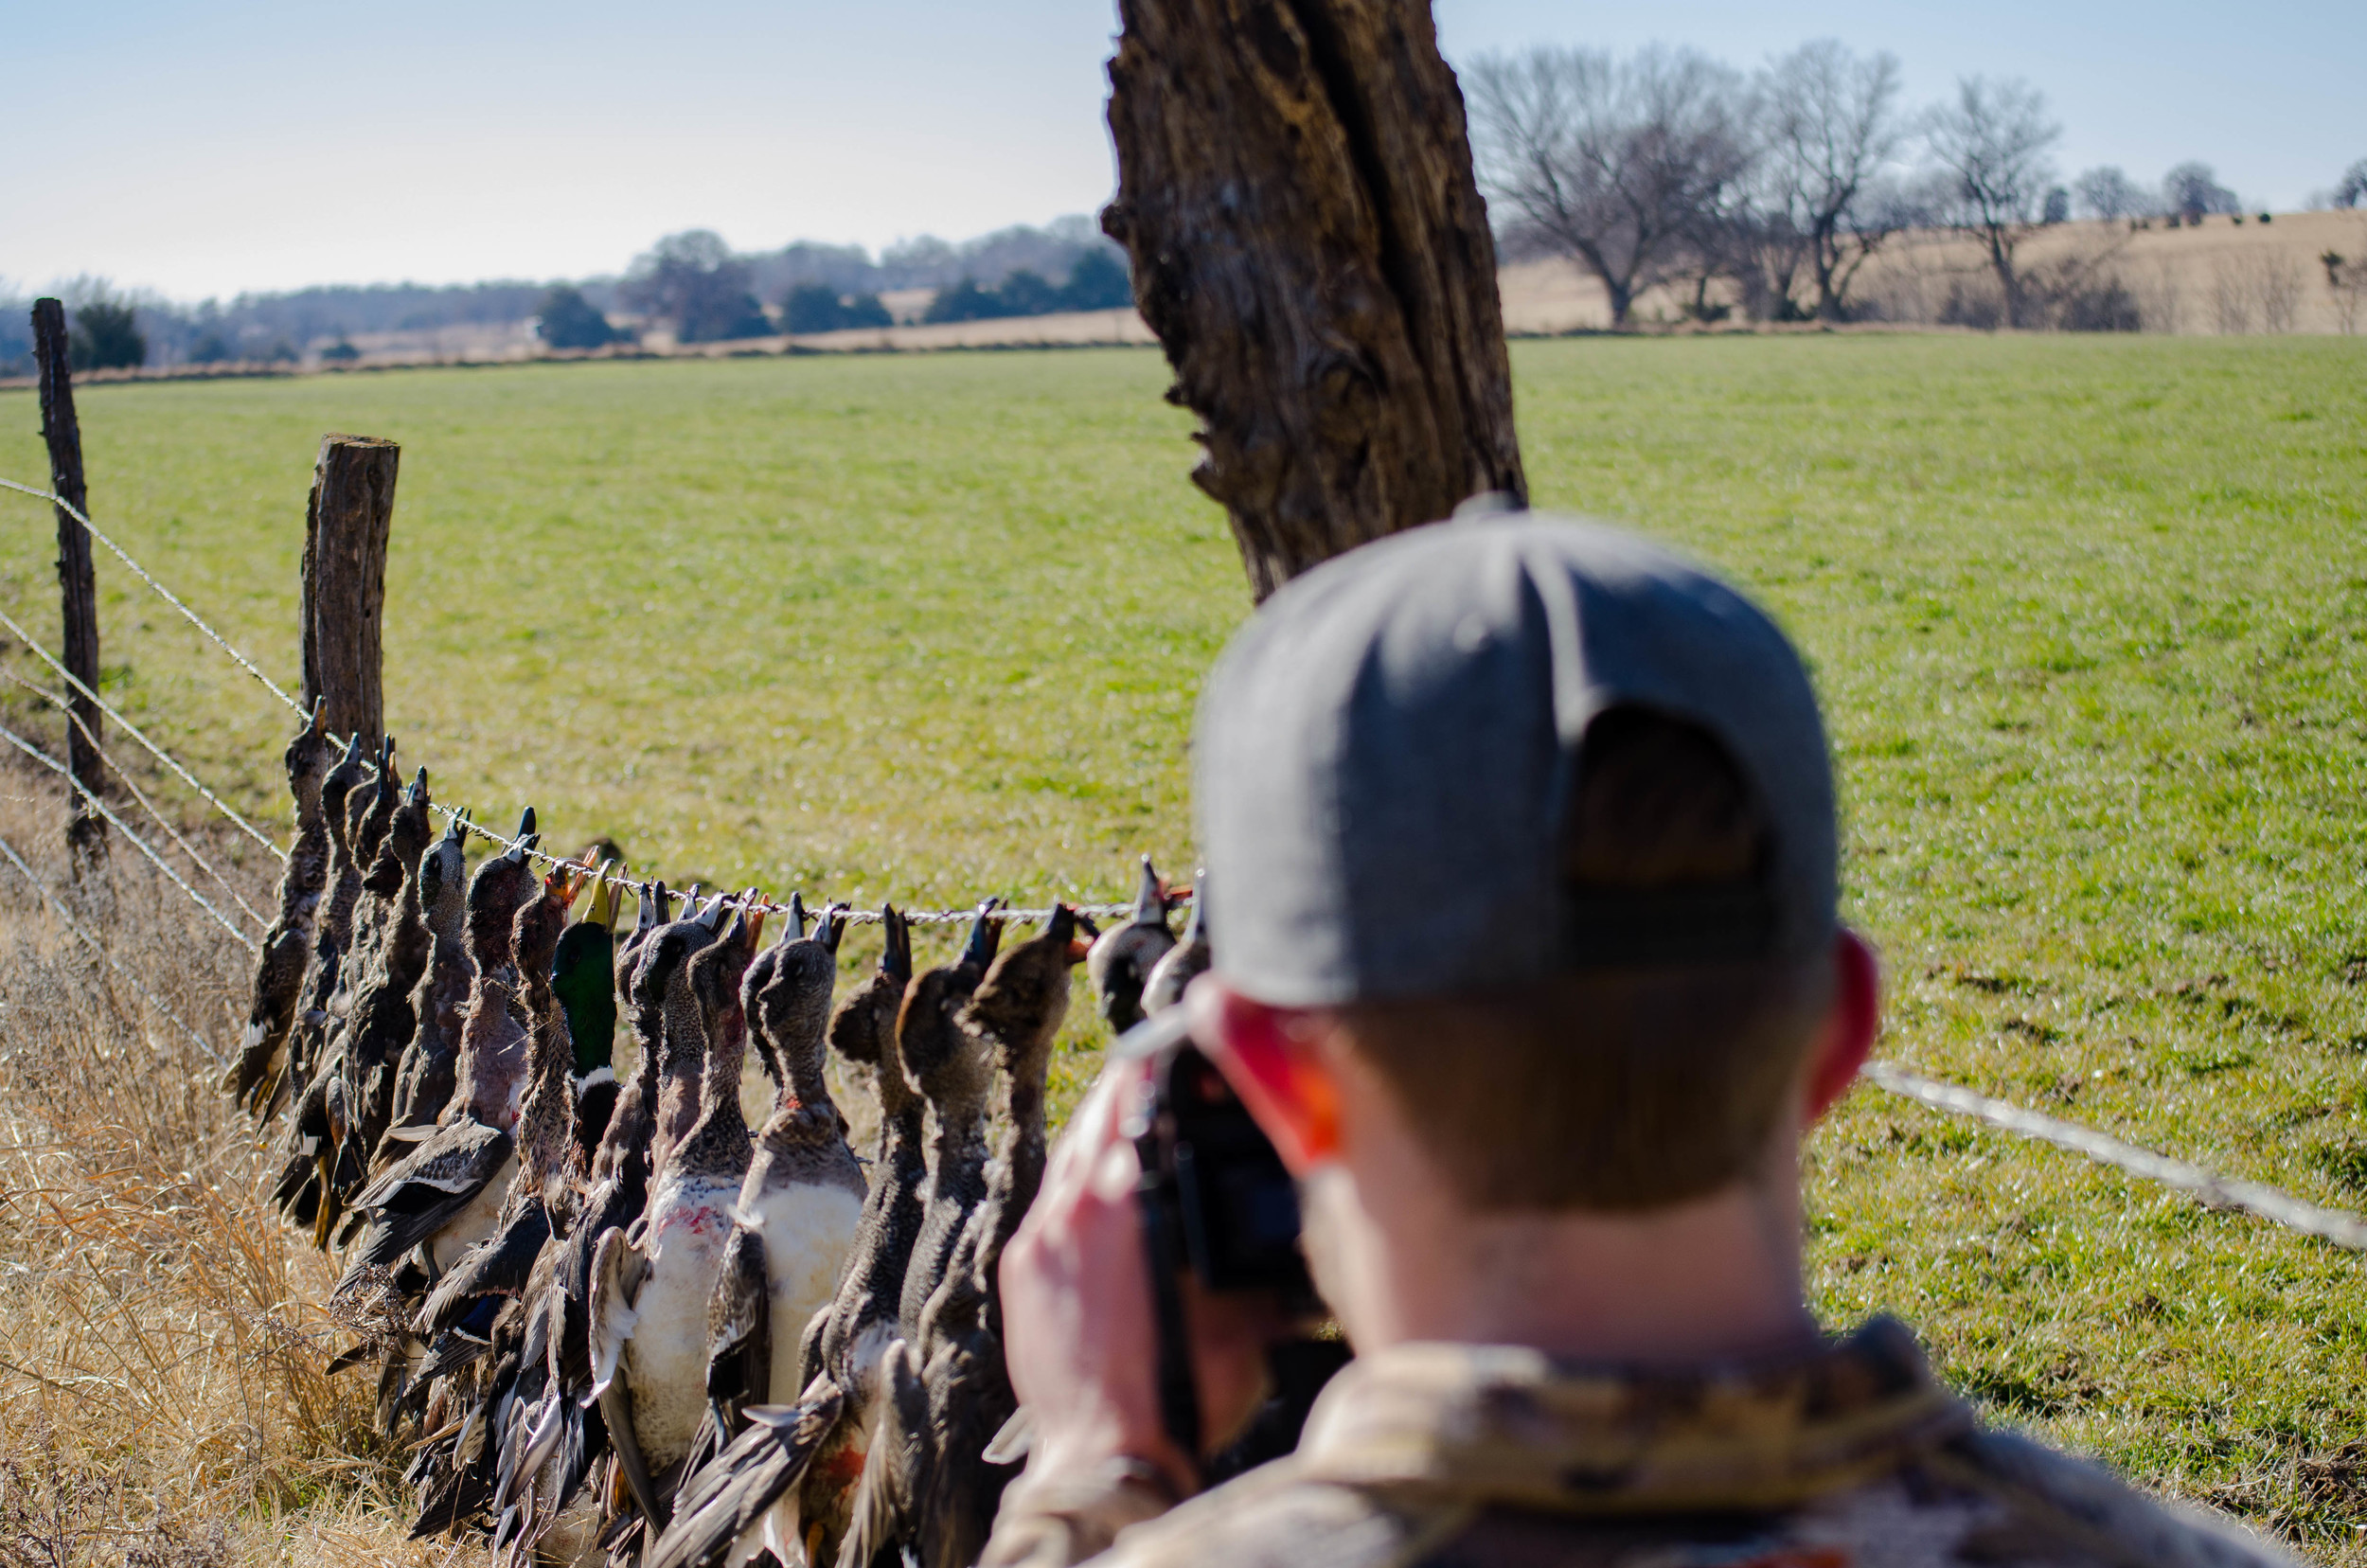 Gallery-Hunter-Theissen-Oklahoma-Professional-Outdoorsman-Competitive-Angler-Waterfowl-hunting-guide-bass-fishing-8.jpg